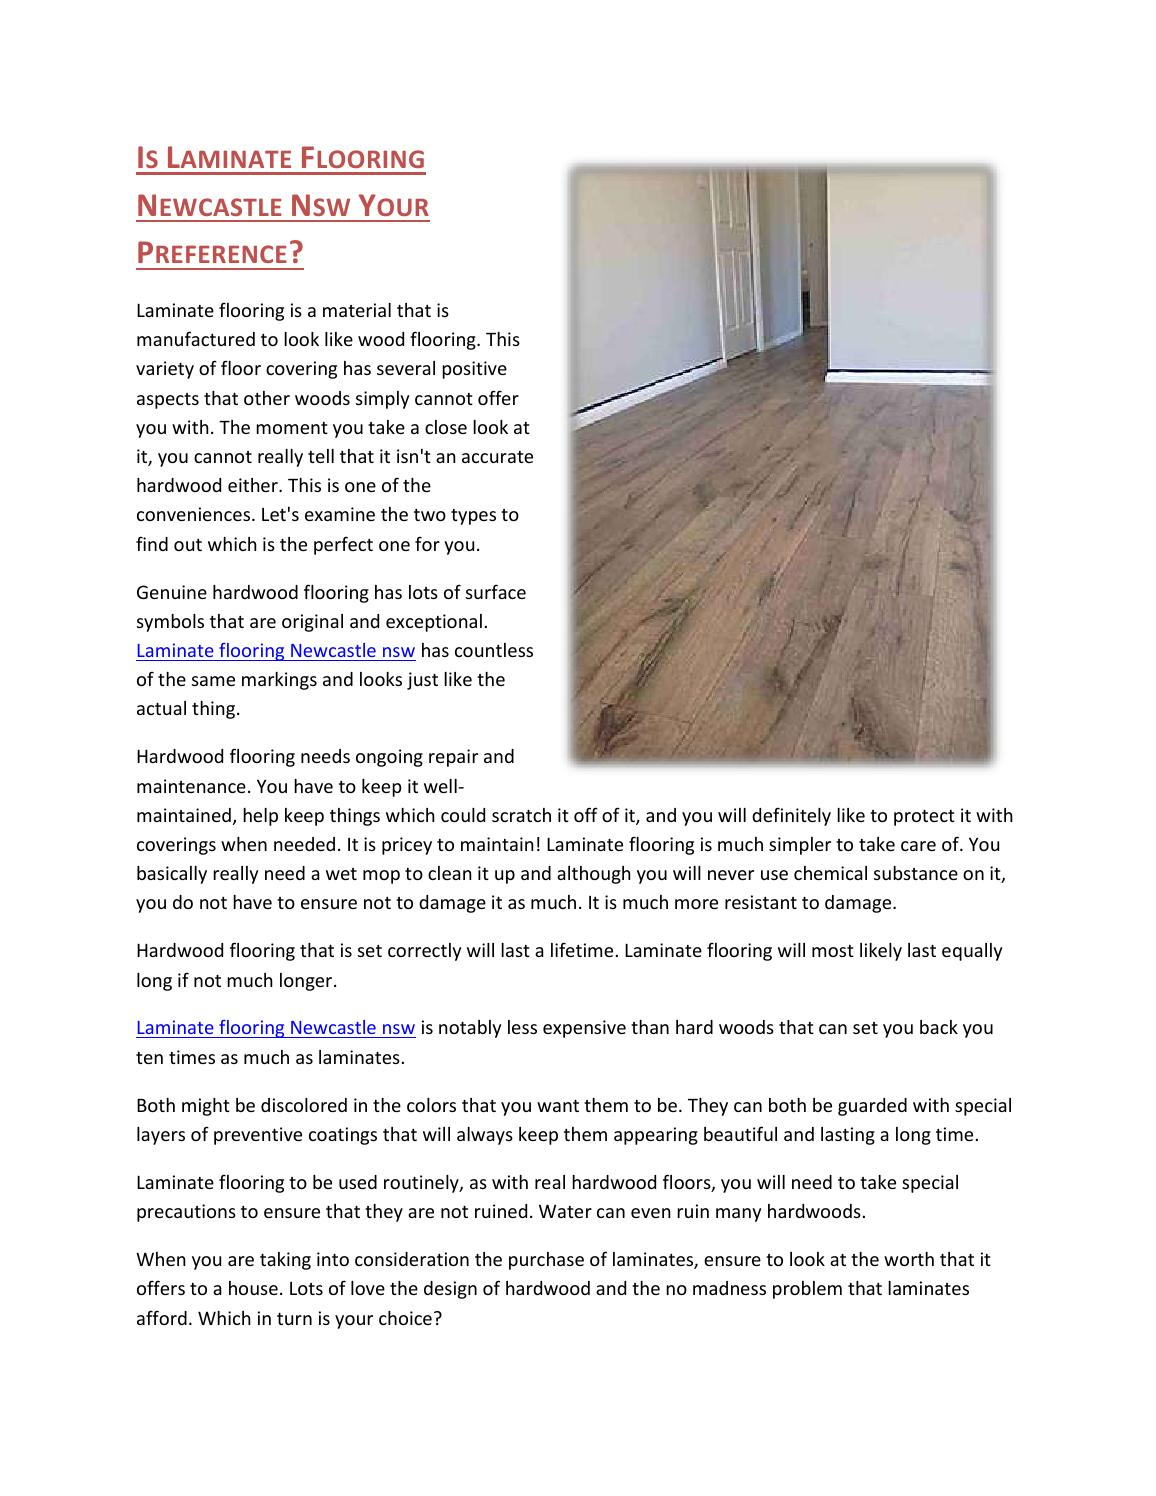 Is Laminate Flooring Newcastle Nsw Your Preference By Lakeside Issuu